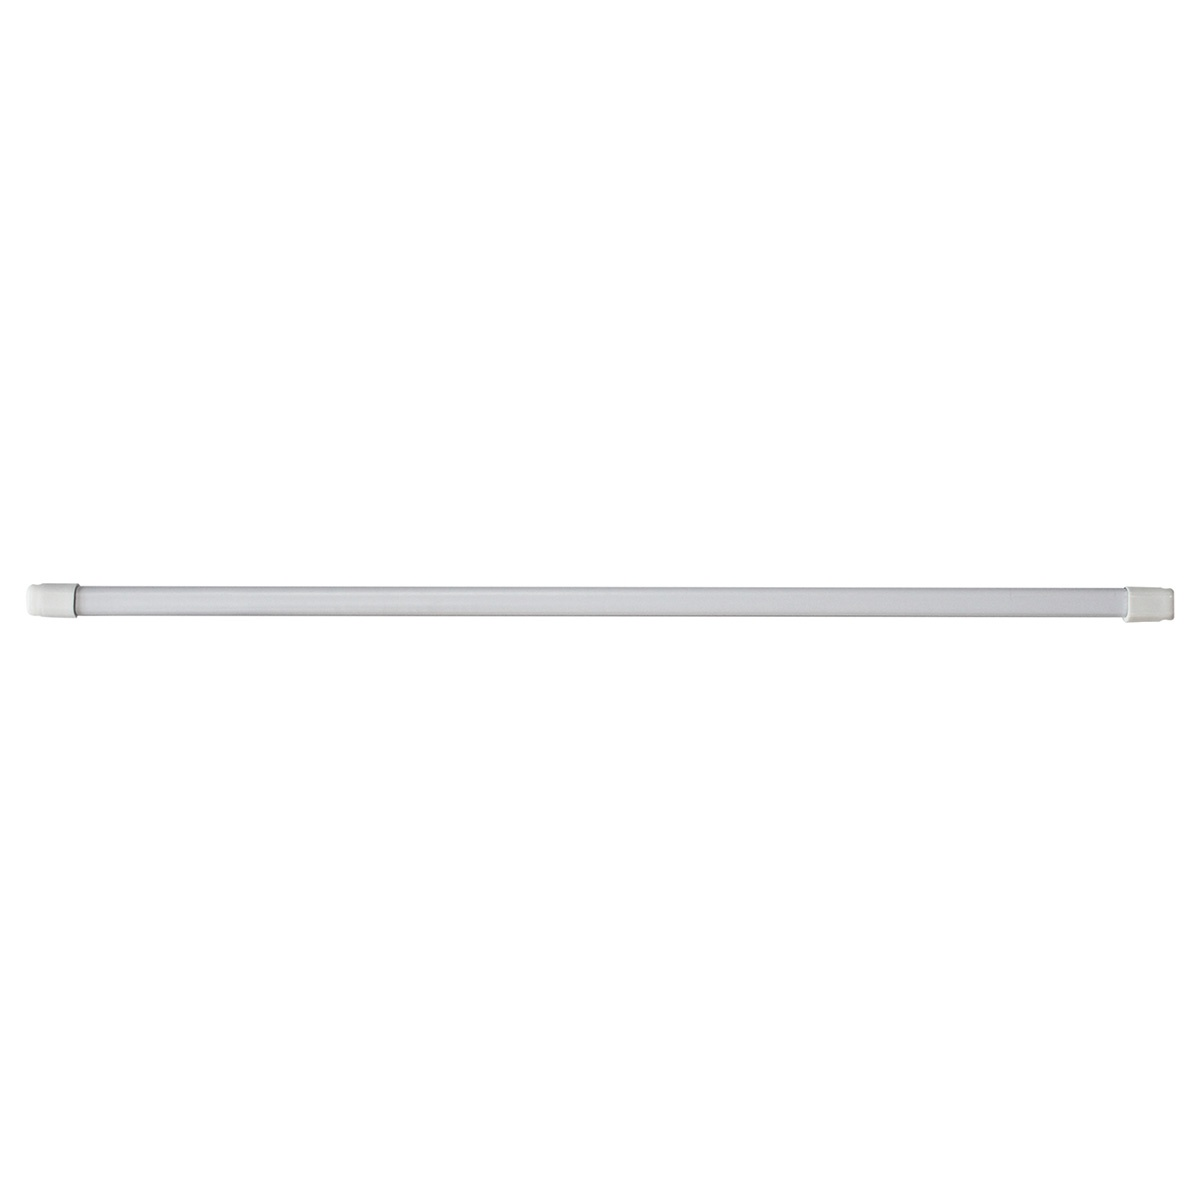 Lot de 2 Tringles Ovales Extensible de 11mm  (Blanc)